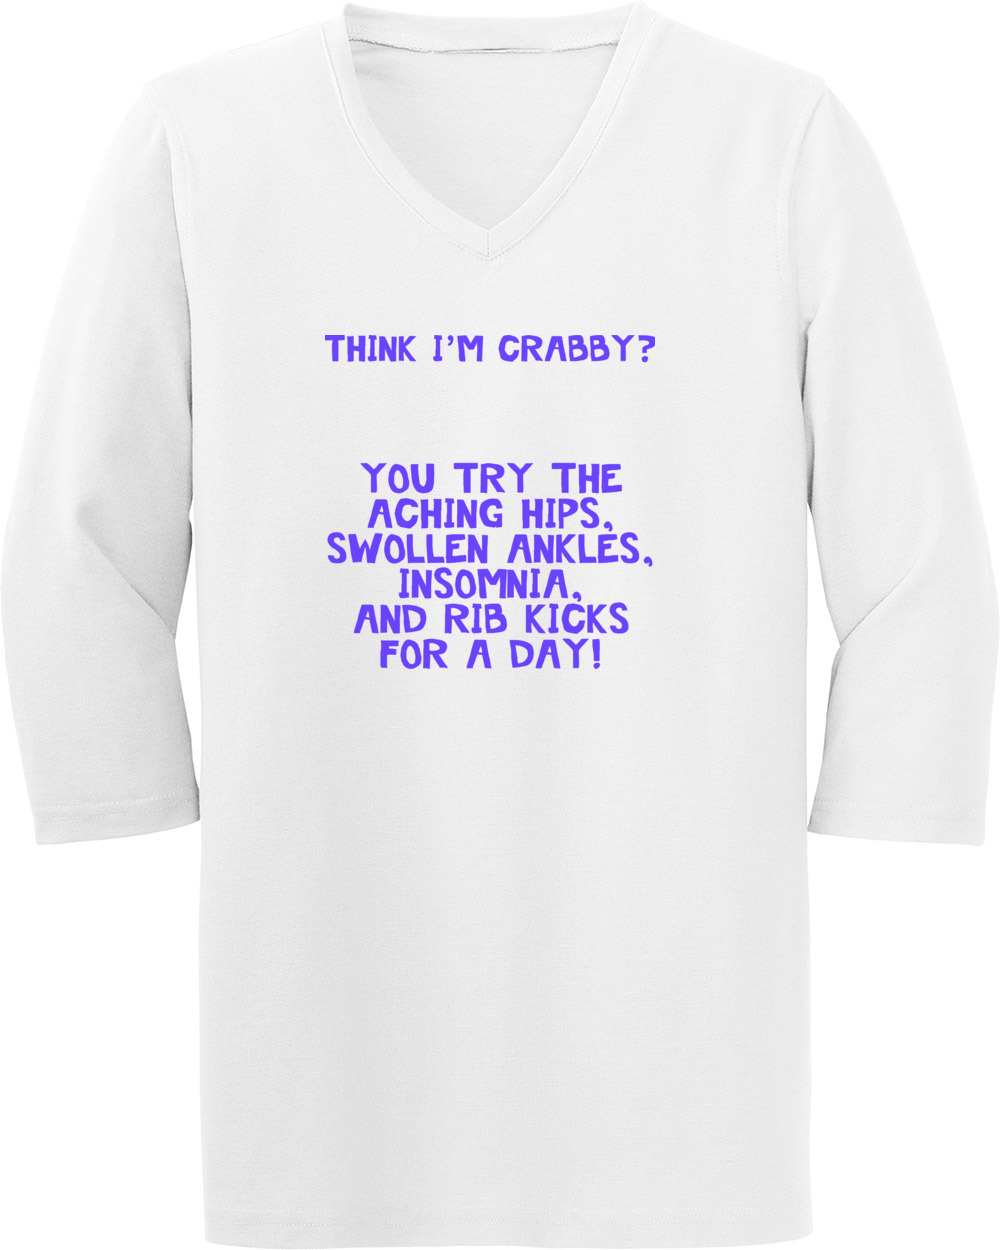 db2b9387ca4 Maternity Shirts With Cute Sayings - Cotswold Hire